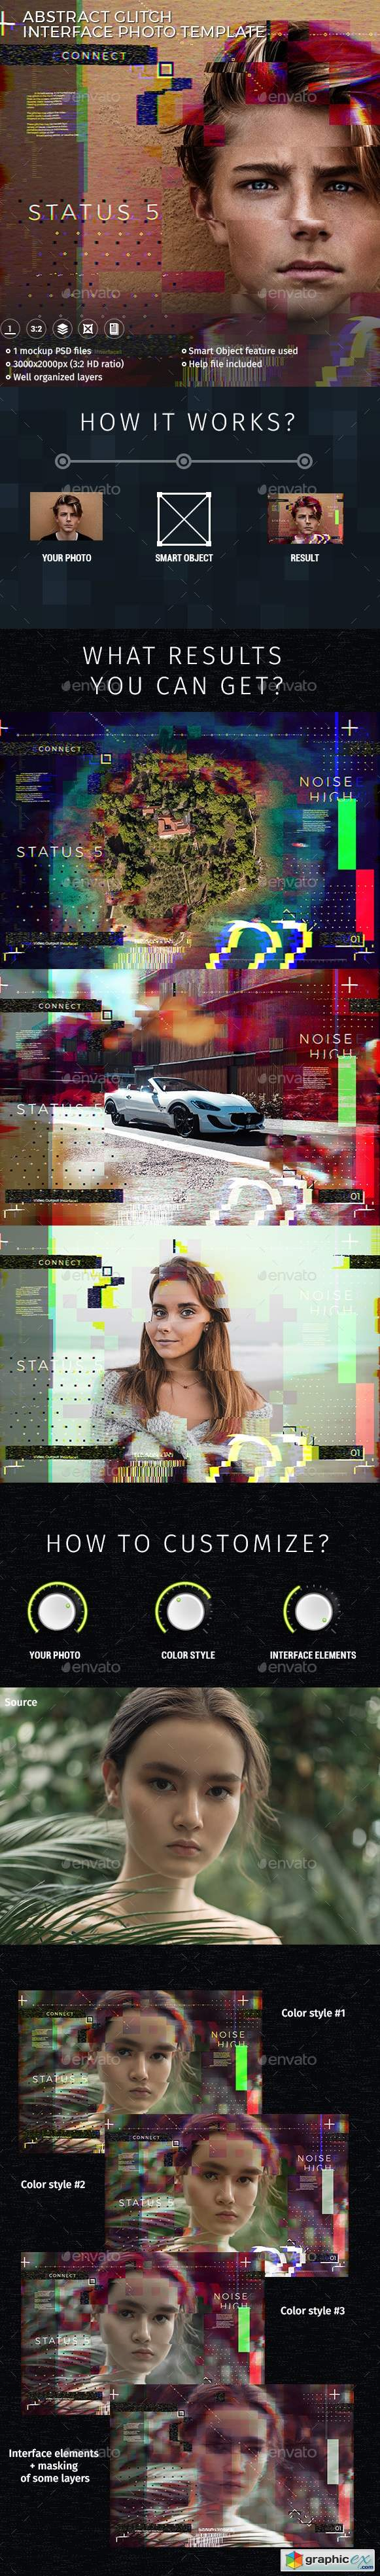 Abstract Glitch Photo Interface Template